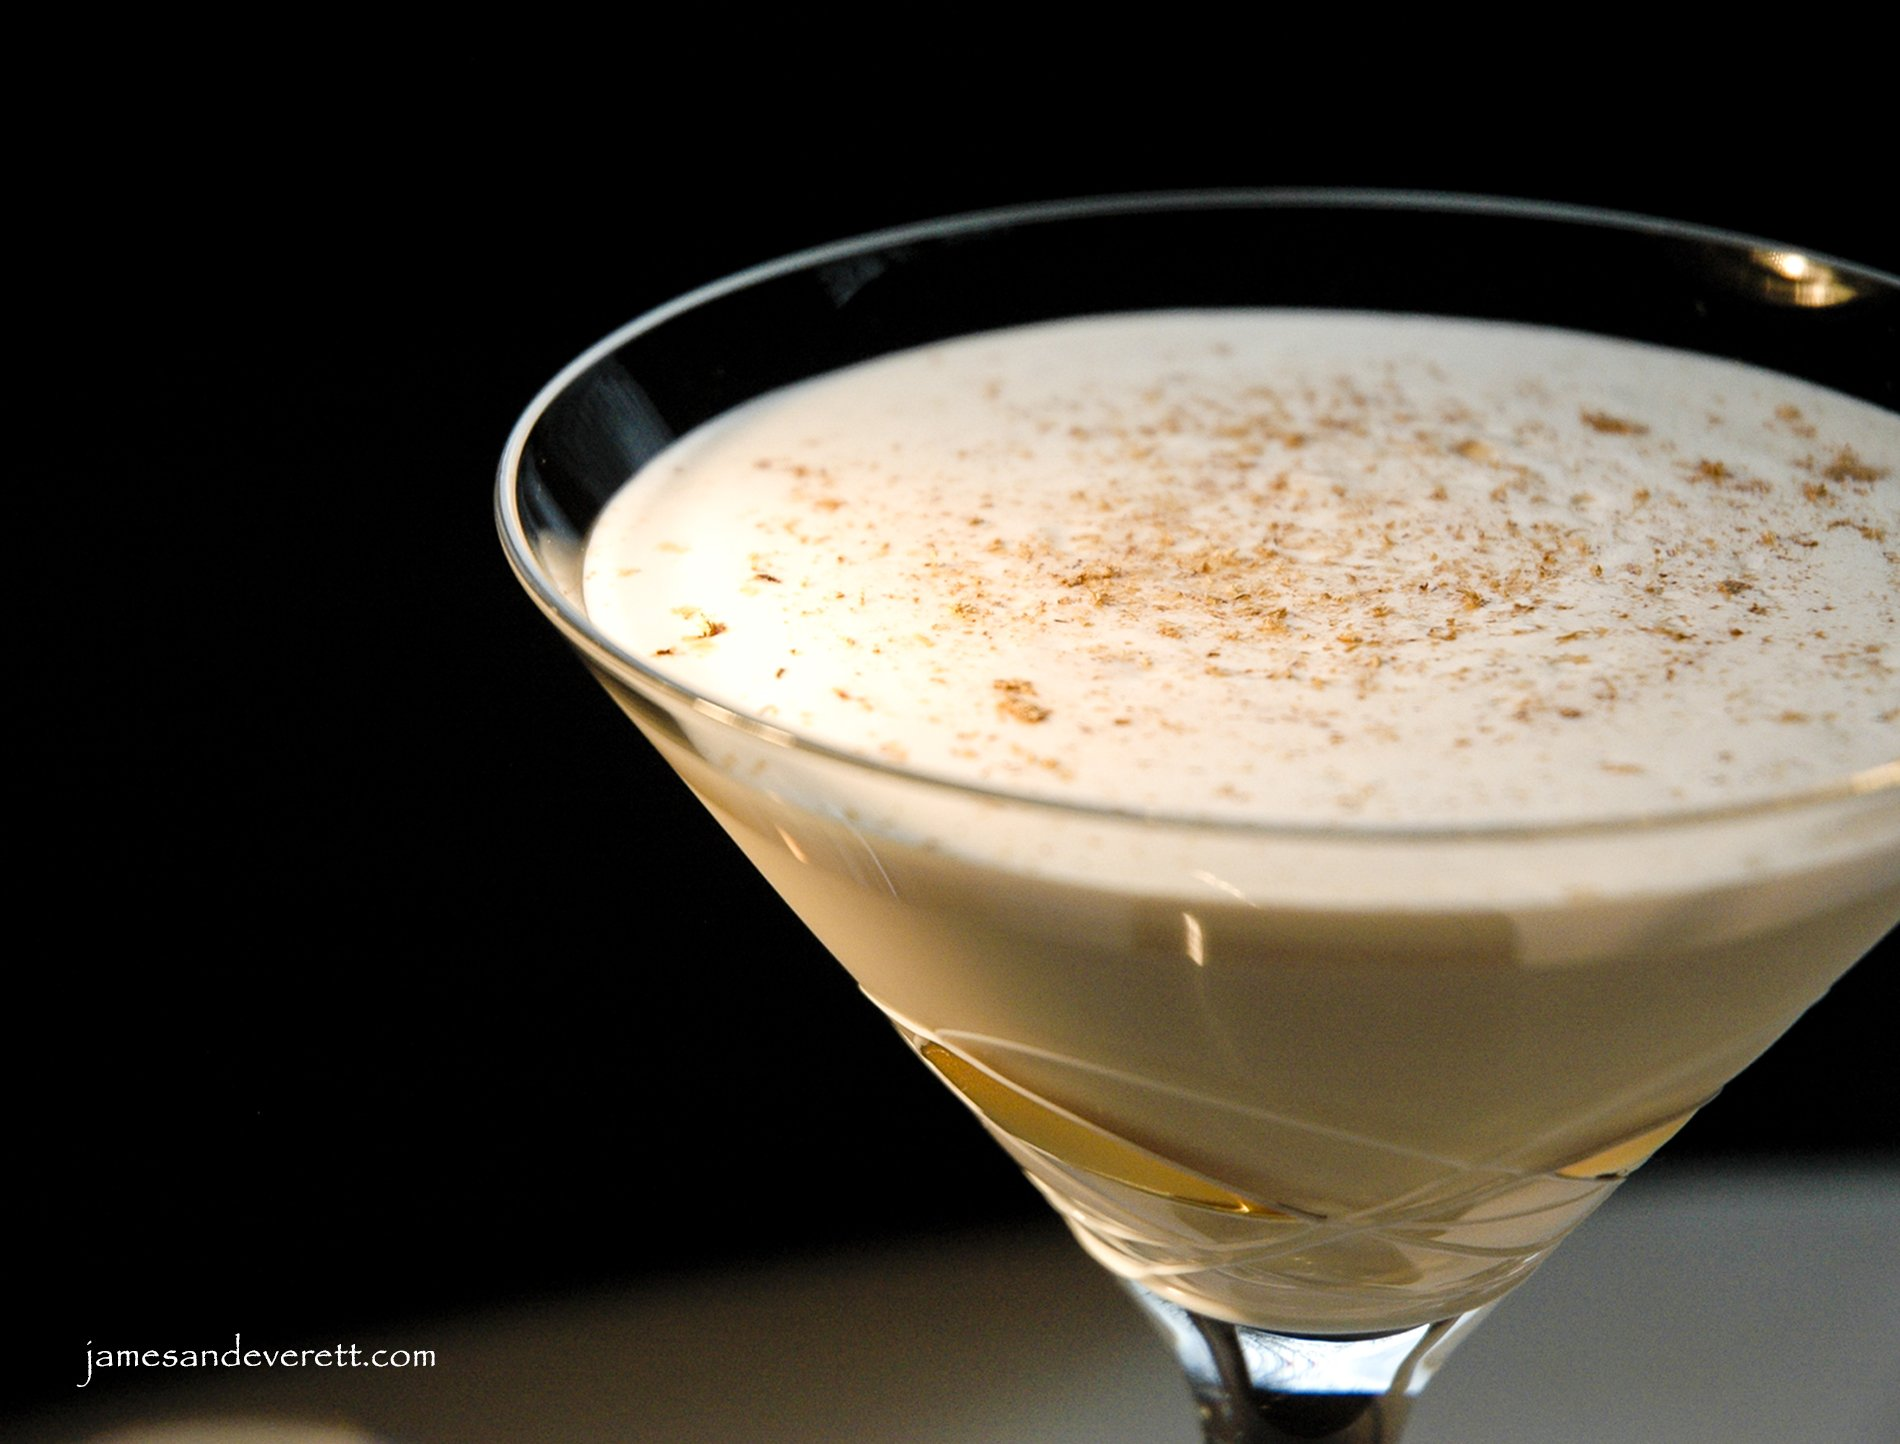 TGIF with a Brandy Alexander – James & Everett